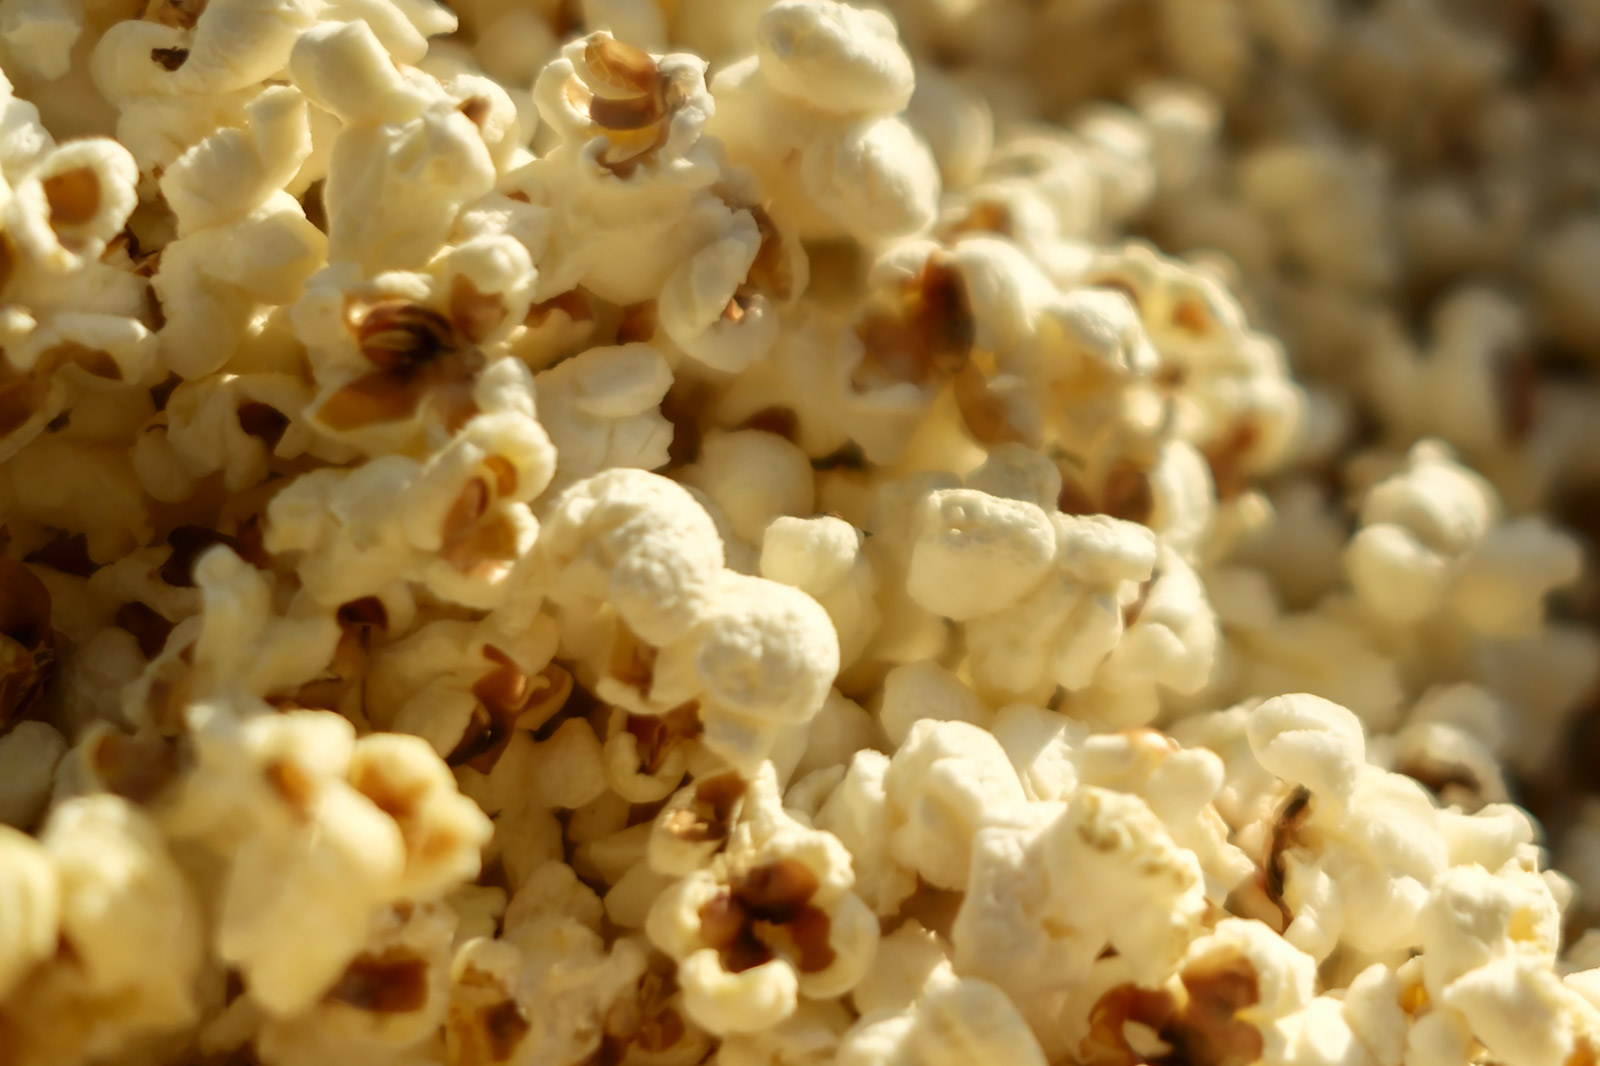 Popcorn healthy snack with MARPHYL Liquid Sea Salt